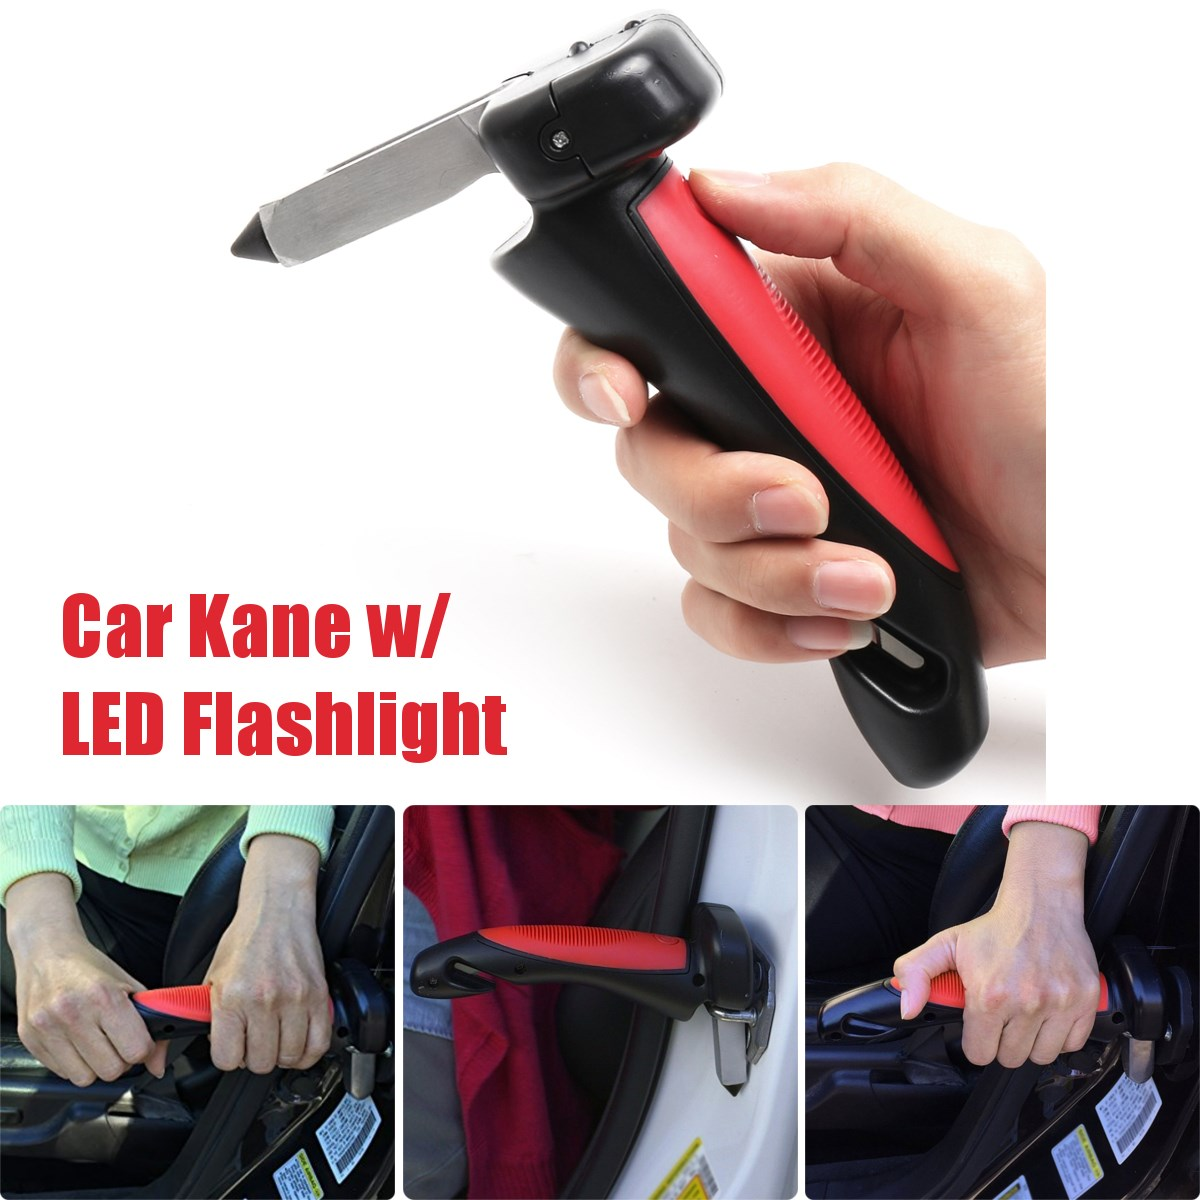 350llbs Portable Car Handle Cane Support Auto Assist Grab Bar Vehicle Emergency Escape Hammer Tool with Window Breaker and Seat